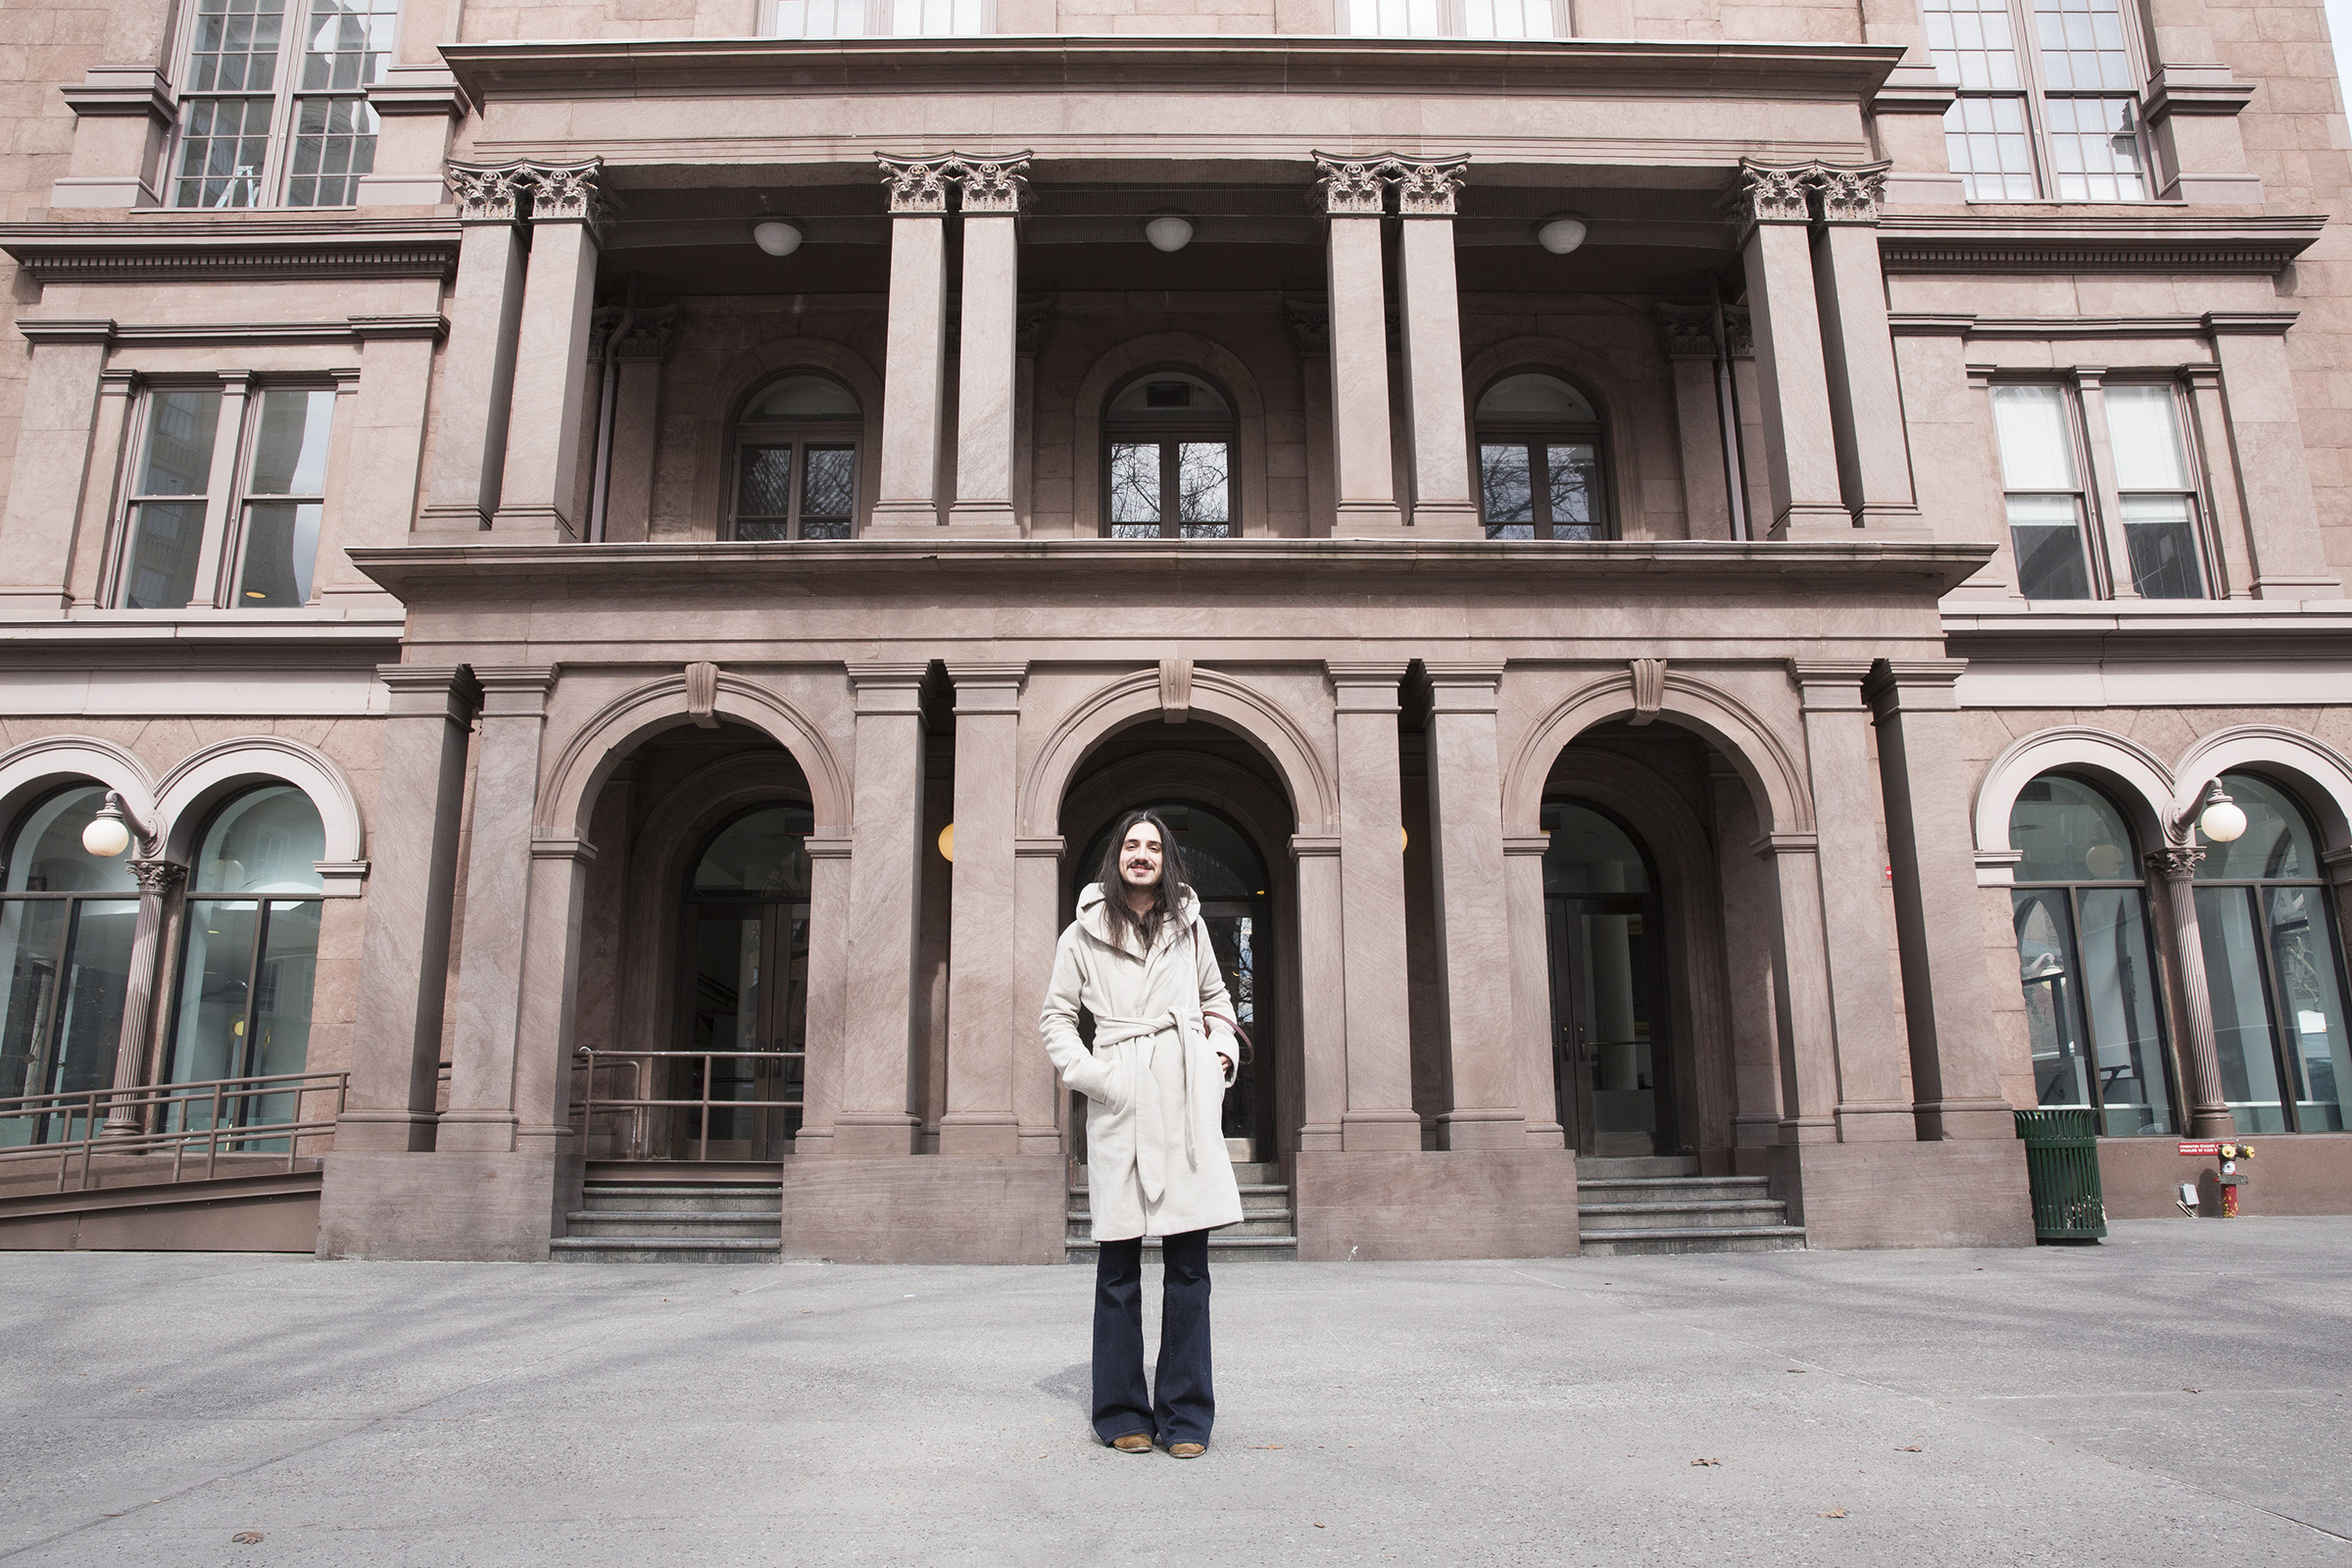 Aaron stands in front of The Cooper Union Foundation Building on East 7th Street in New York City. They completed the Type@Cooper program and learned about TypeThursday.